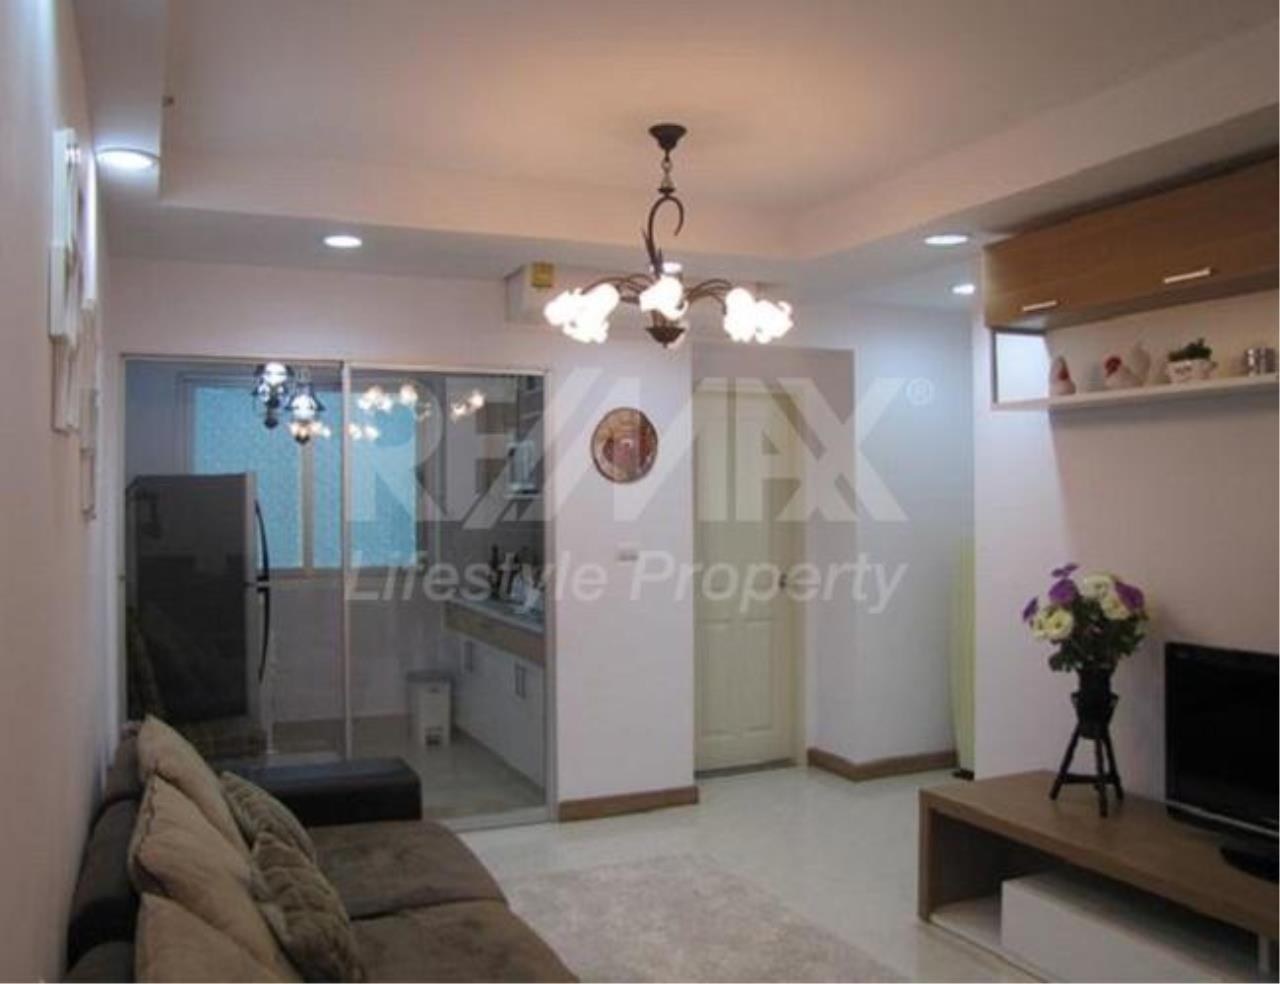 RE/MAX LifeStyle Property Agency's Supalai Park Ekkamai-Thonglor 11